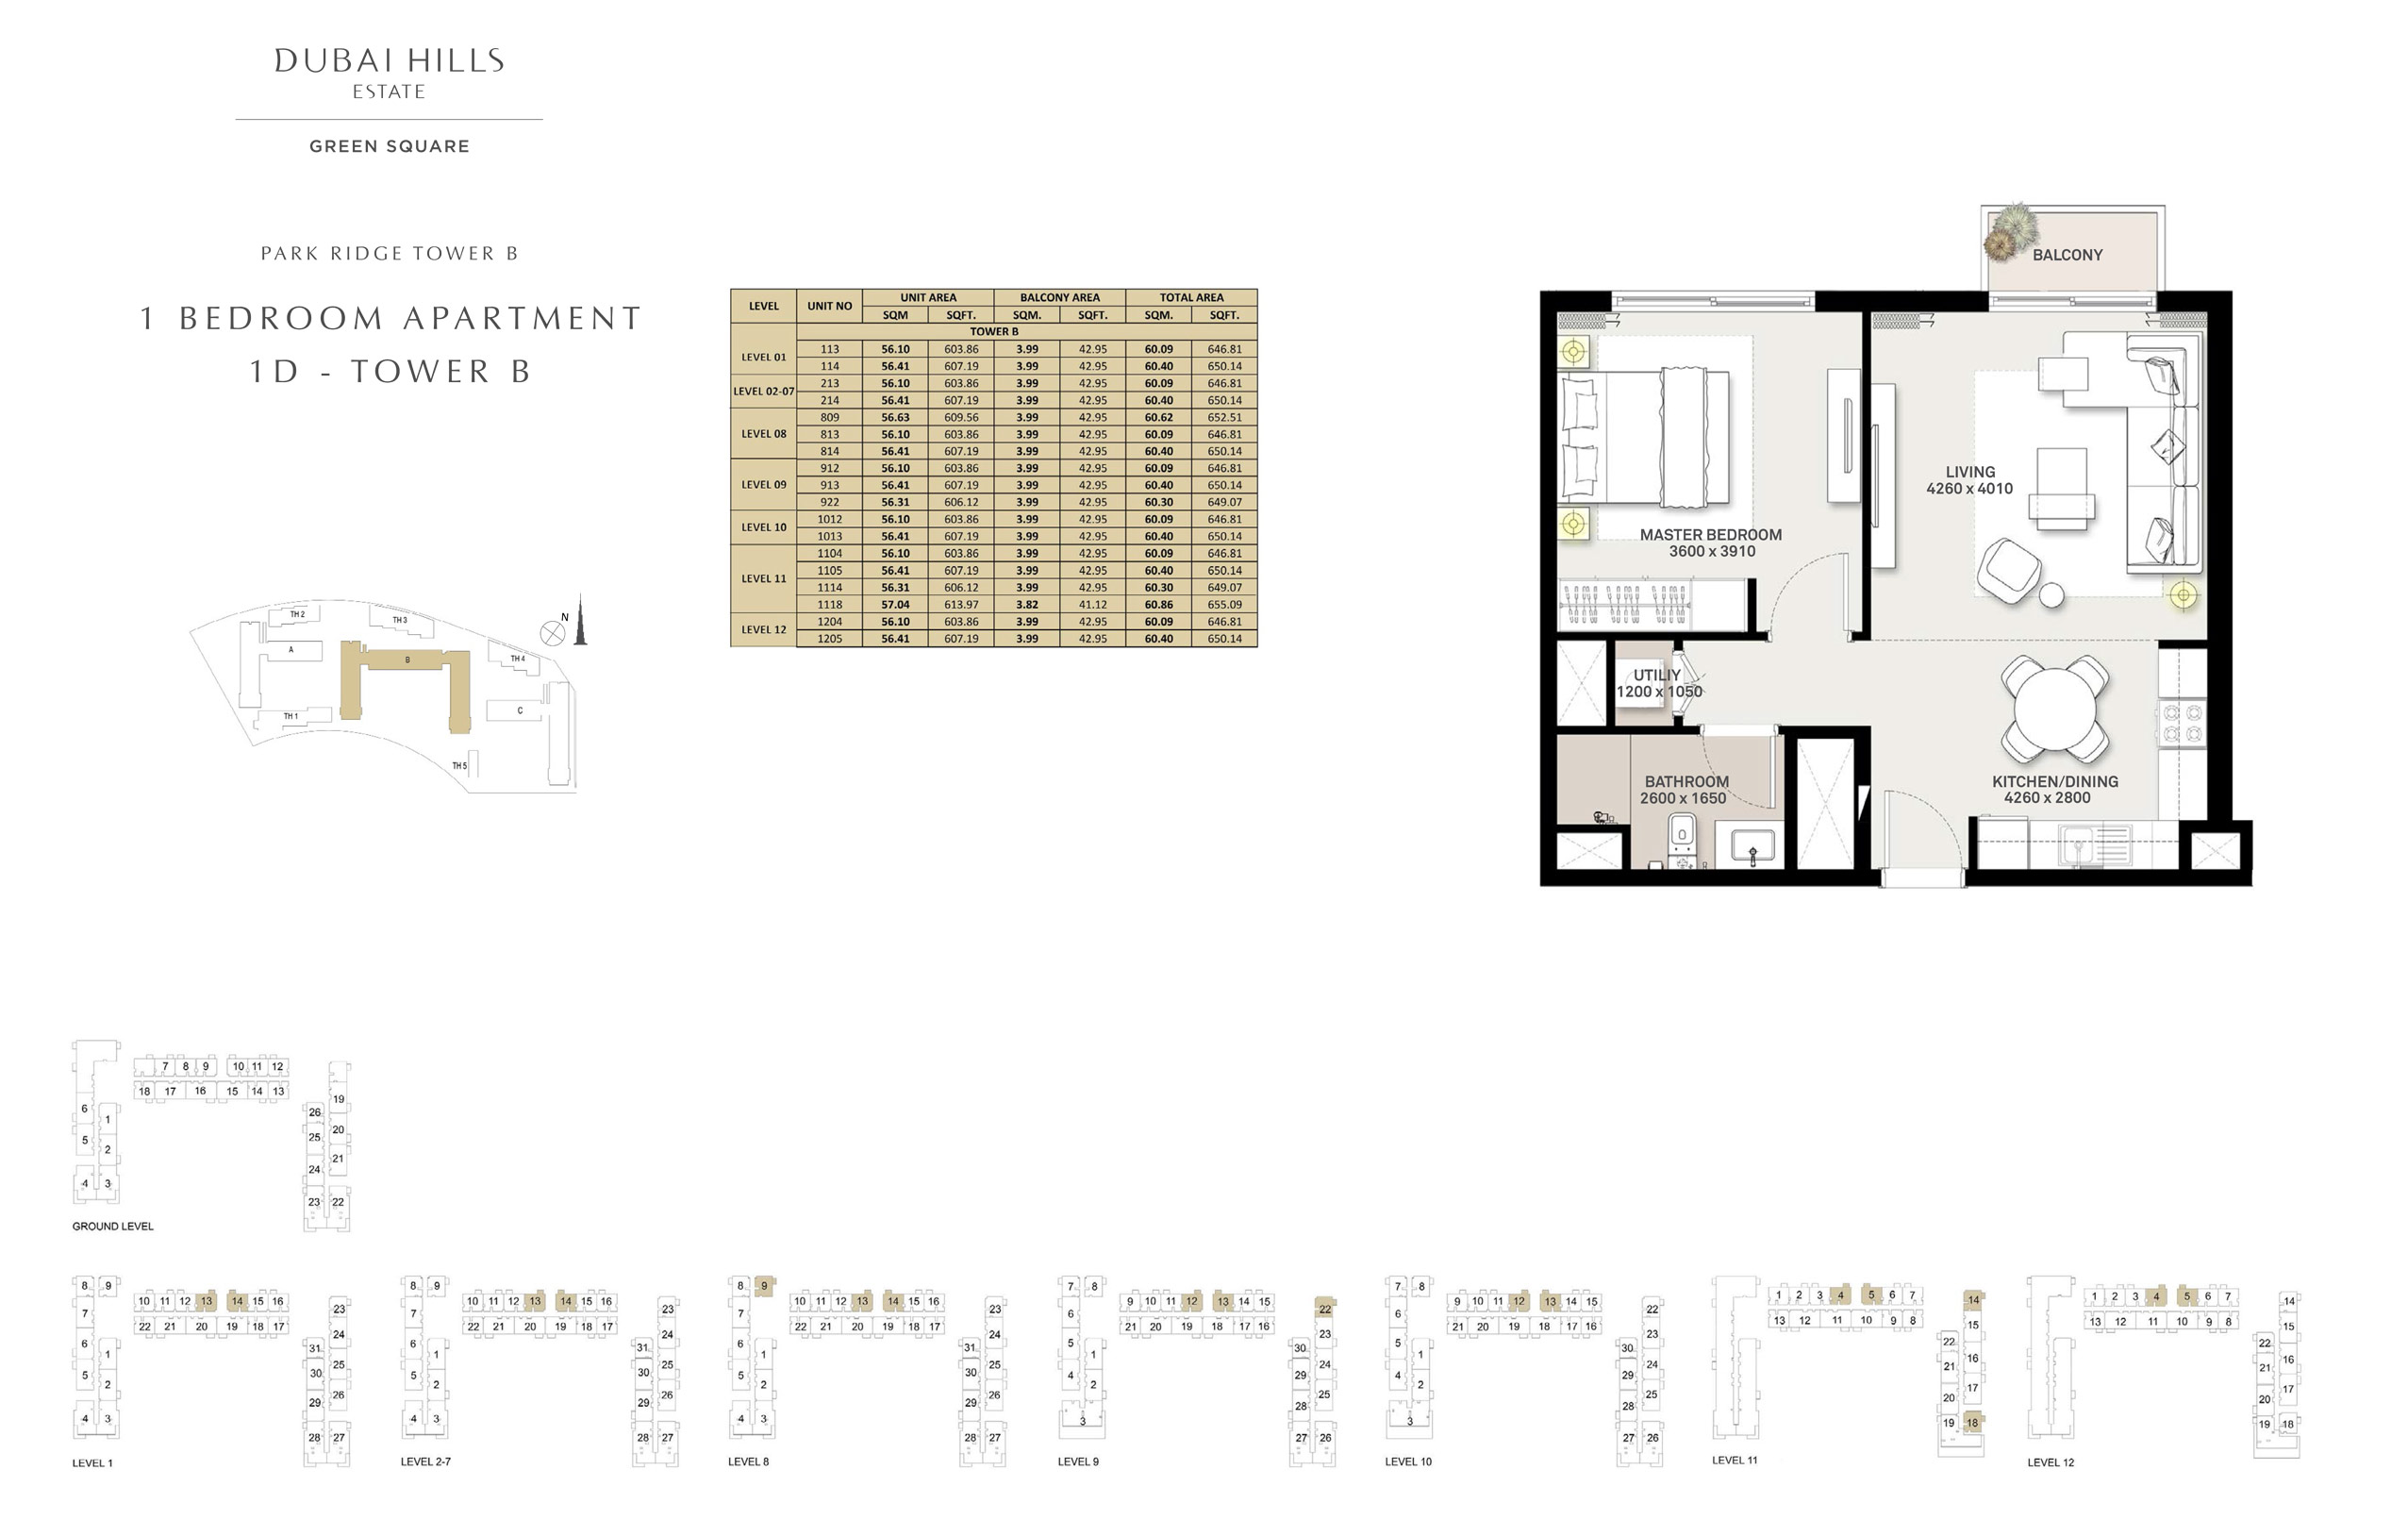 1 Bedroom Apartment 1 D - Tower B, Size 646 sq ft